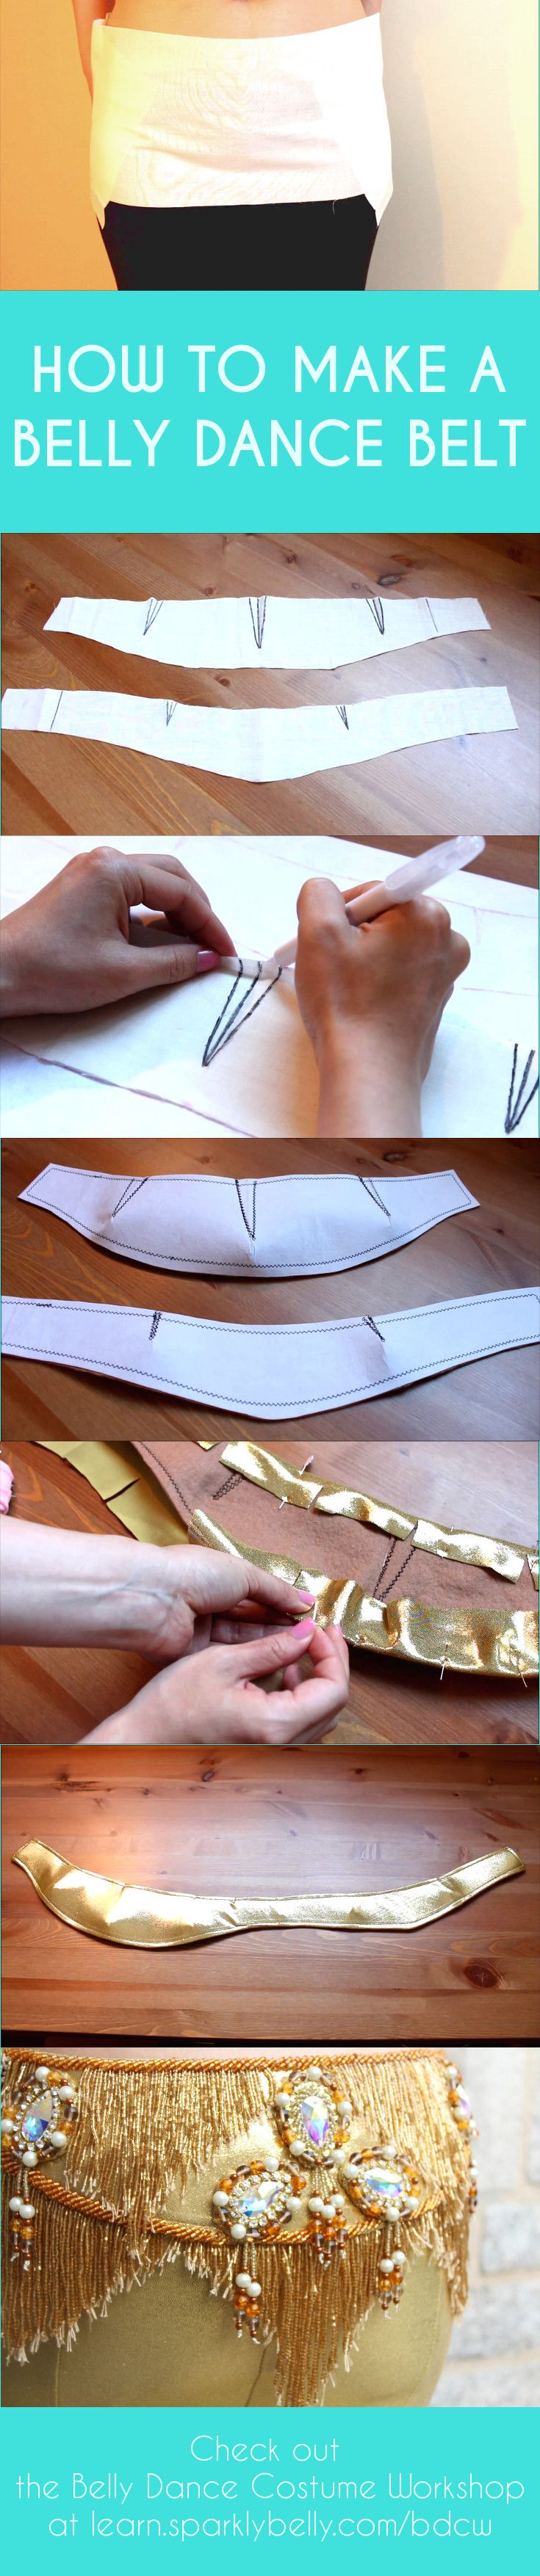 How to make a belly dance belt - custom made to your size.